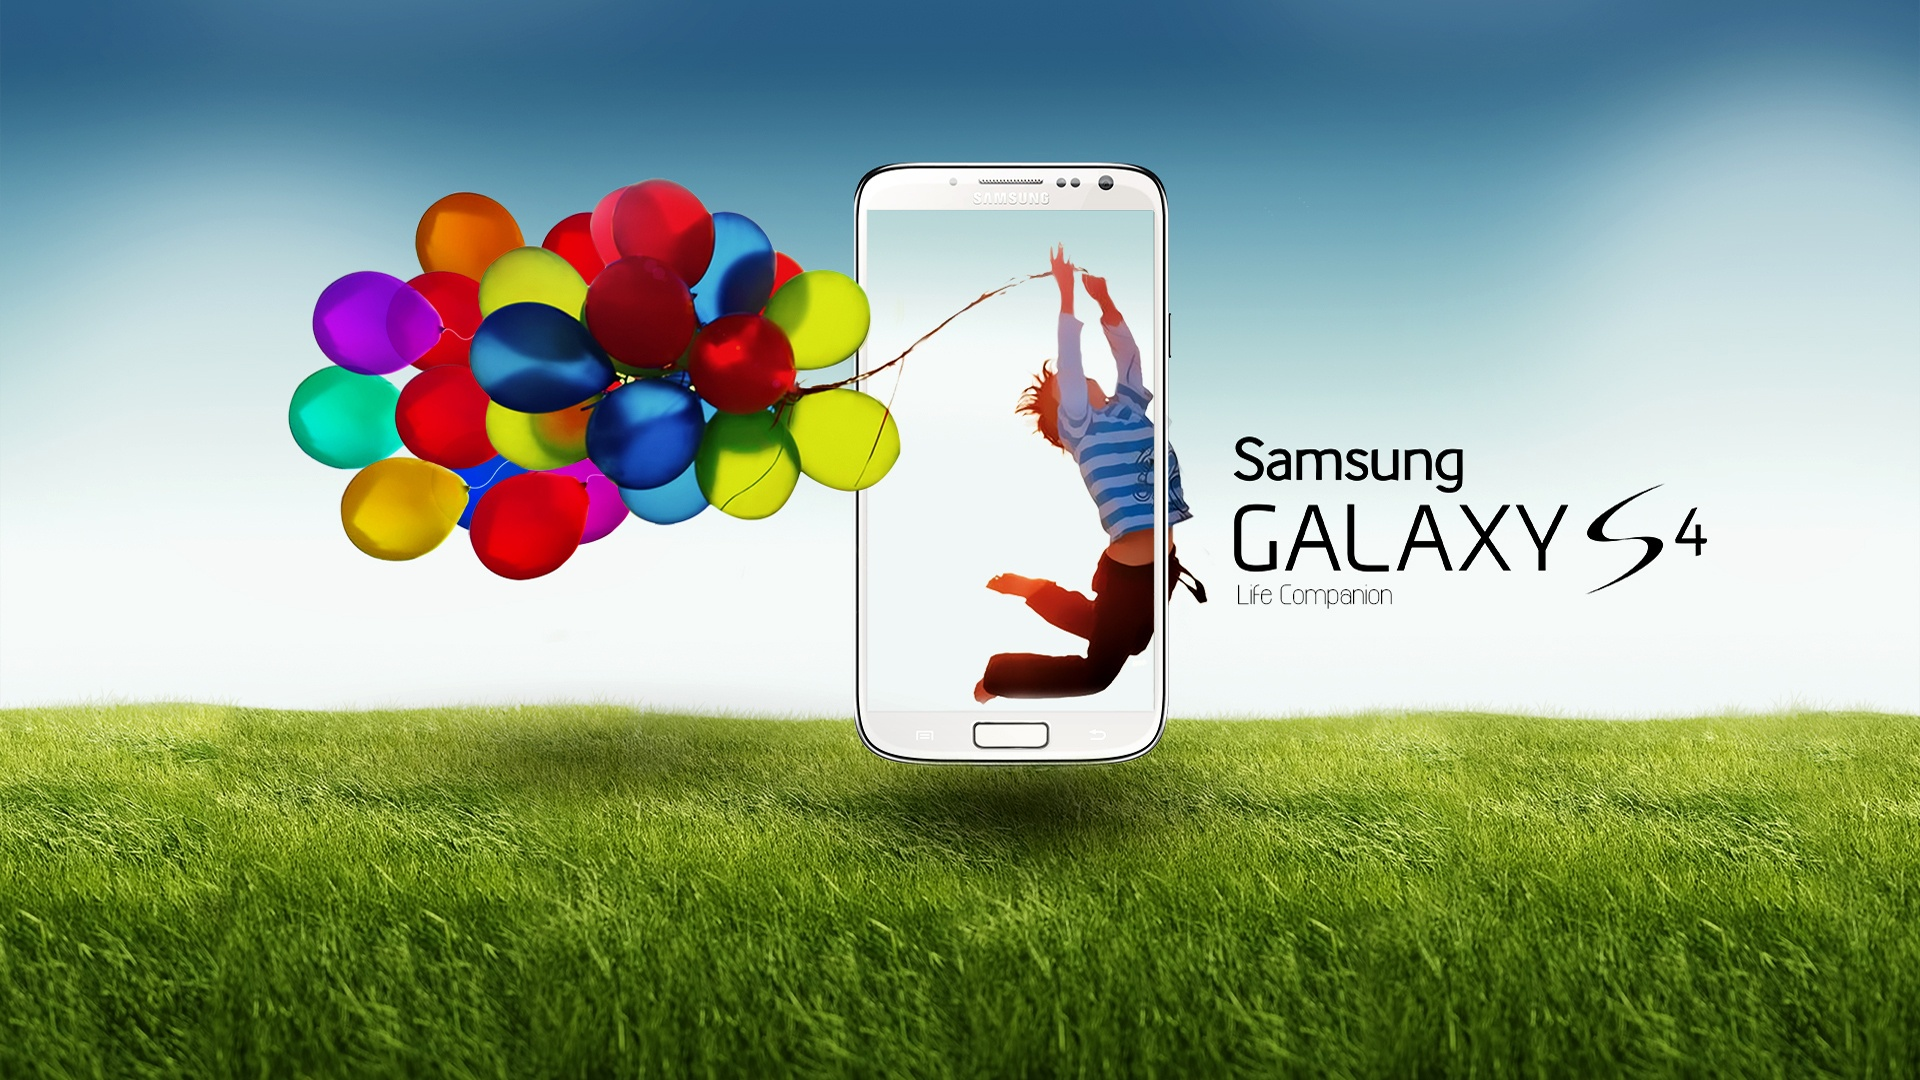 Samsung Wallpaper Hd Group: Samsung Galaxy S4 Anuncios Fondos De Pantalla